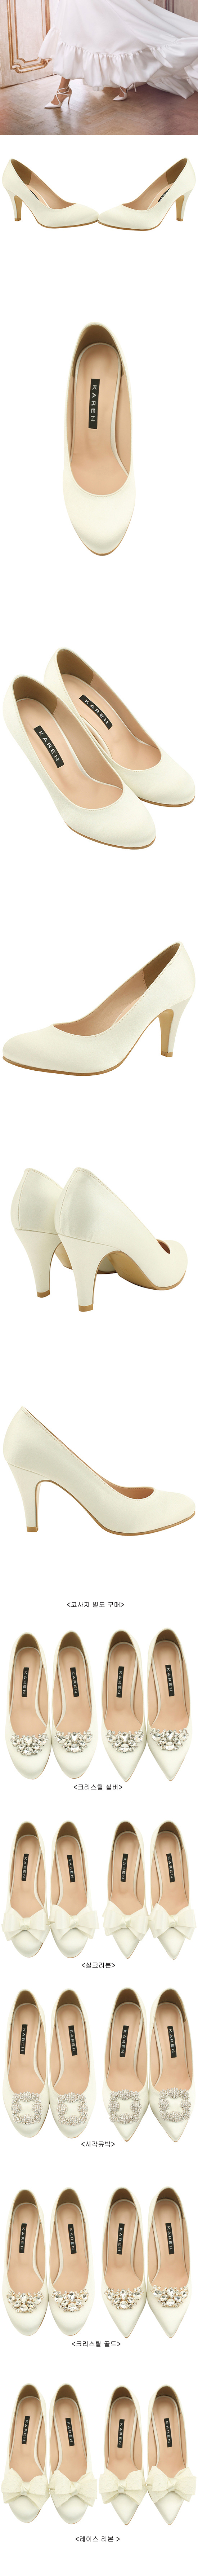 Wedding Shoes Round Toe High Heel Shoes 8cm